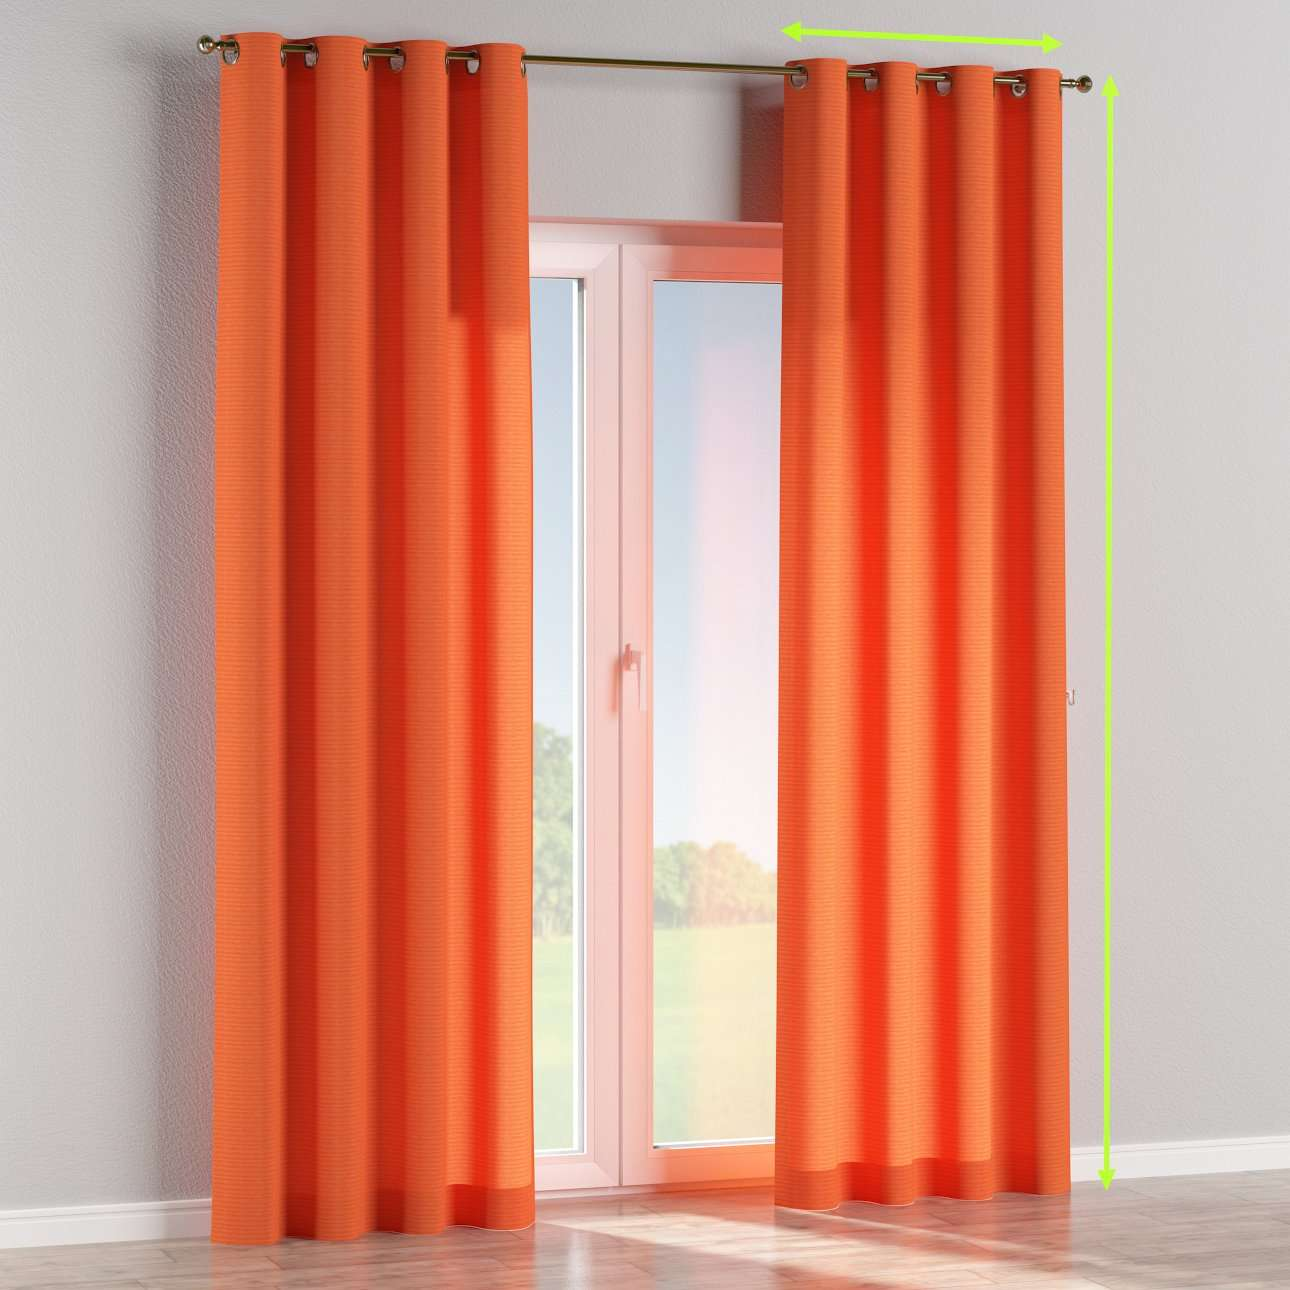 Eyelet lined curtains in collection Jupiter, fabric: 127-35